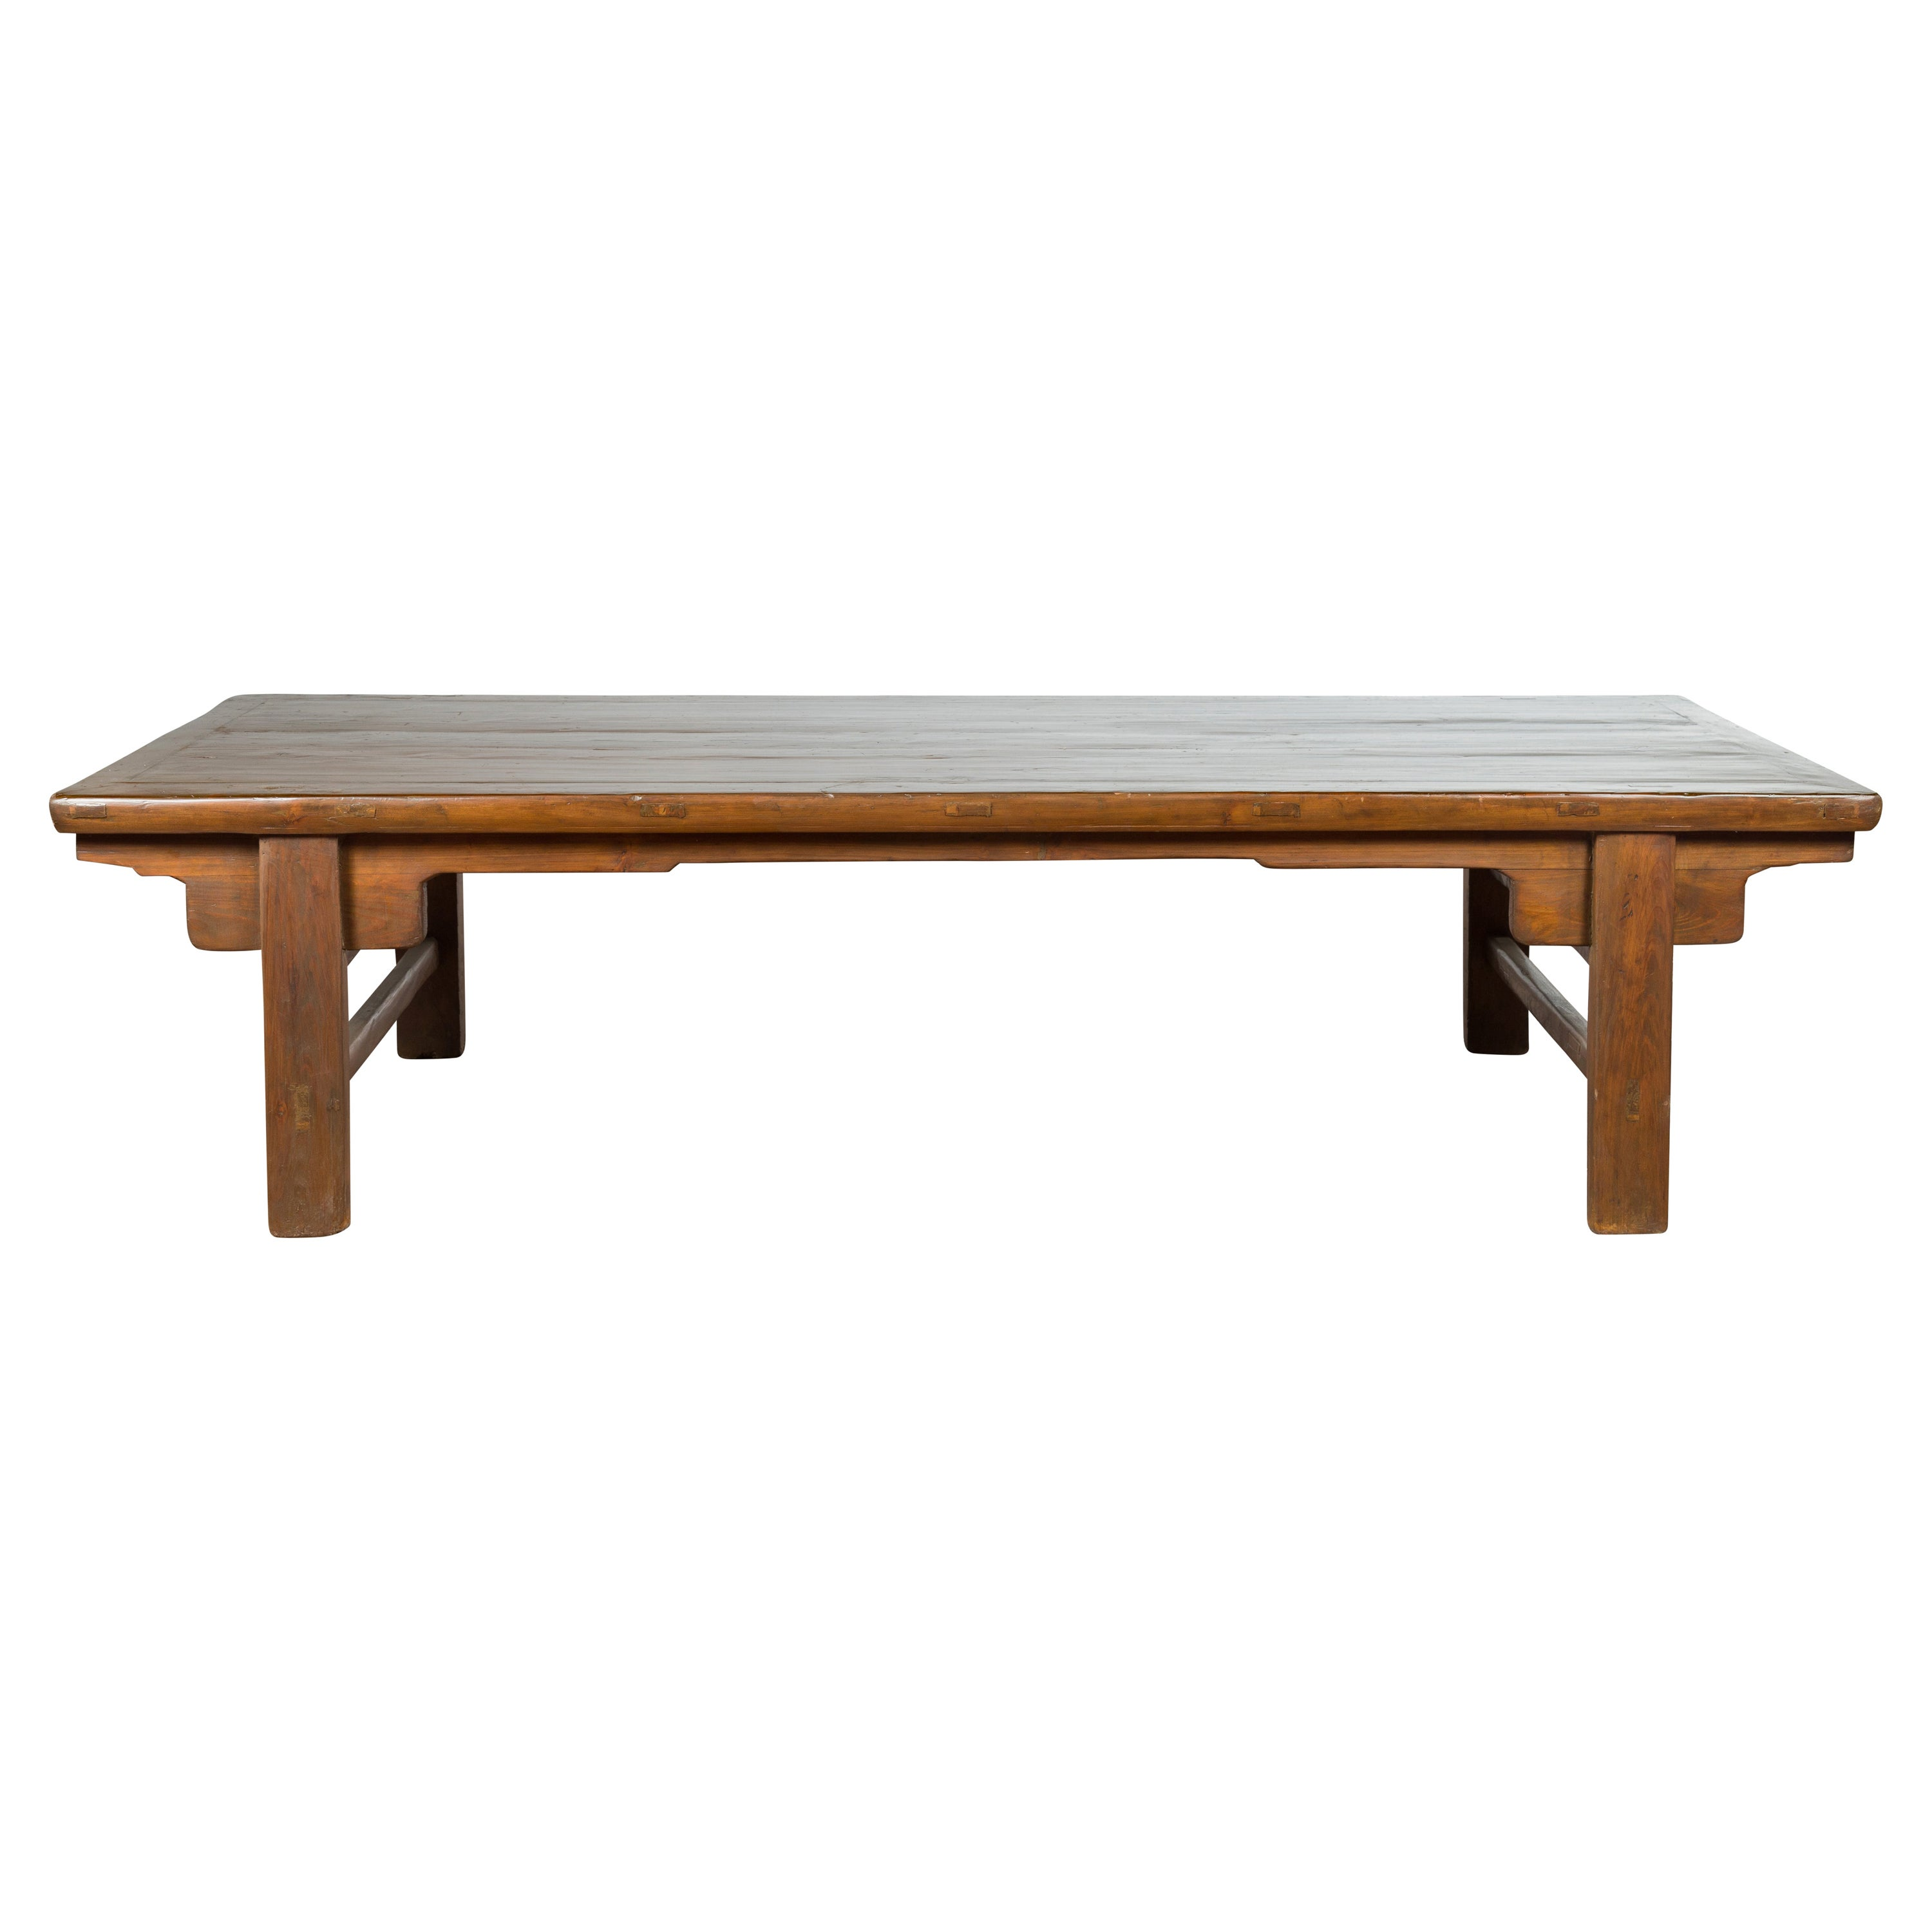 Chinese Qing Dynasty 19th Century Wide Coffee Table with Carved Spandrels